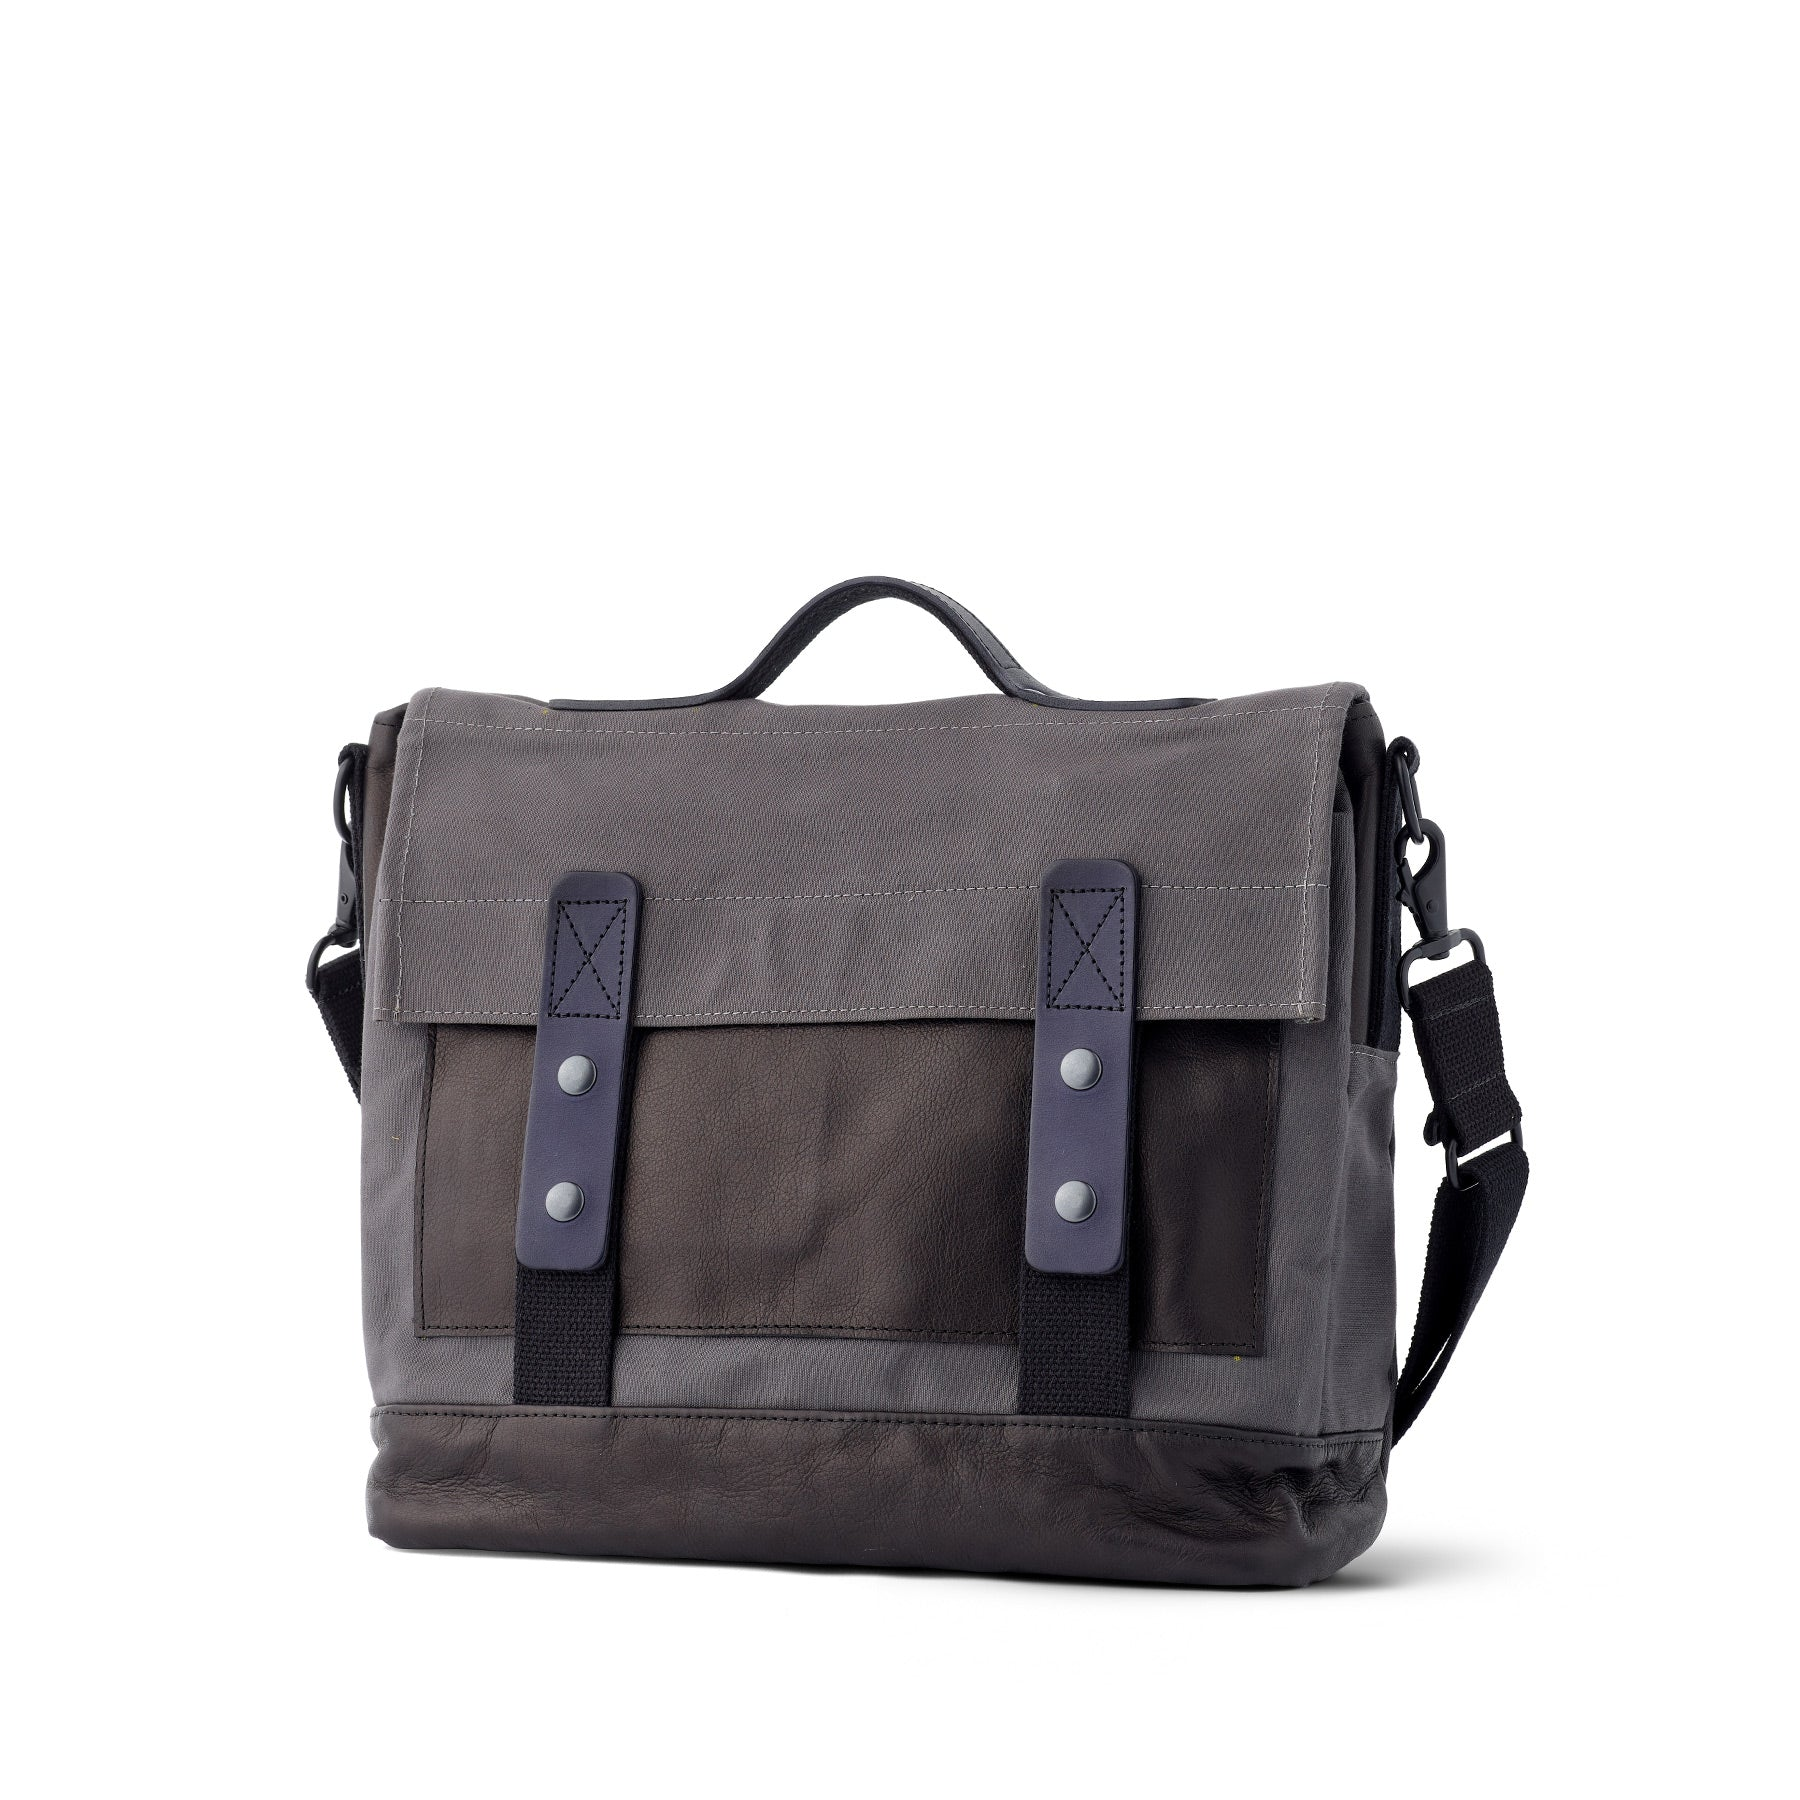 Heath + Stein Supply Bag in Gunmetal Zoom Image 1